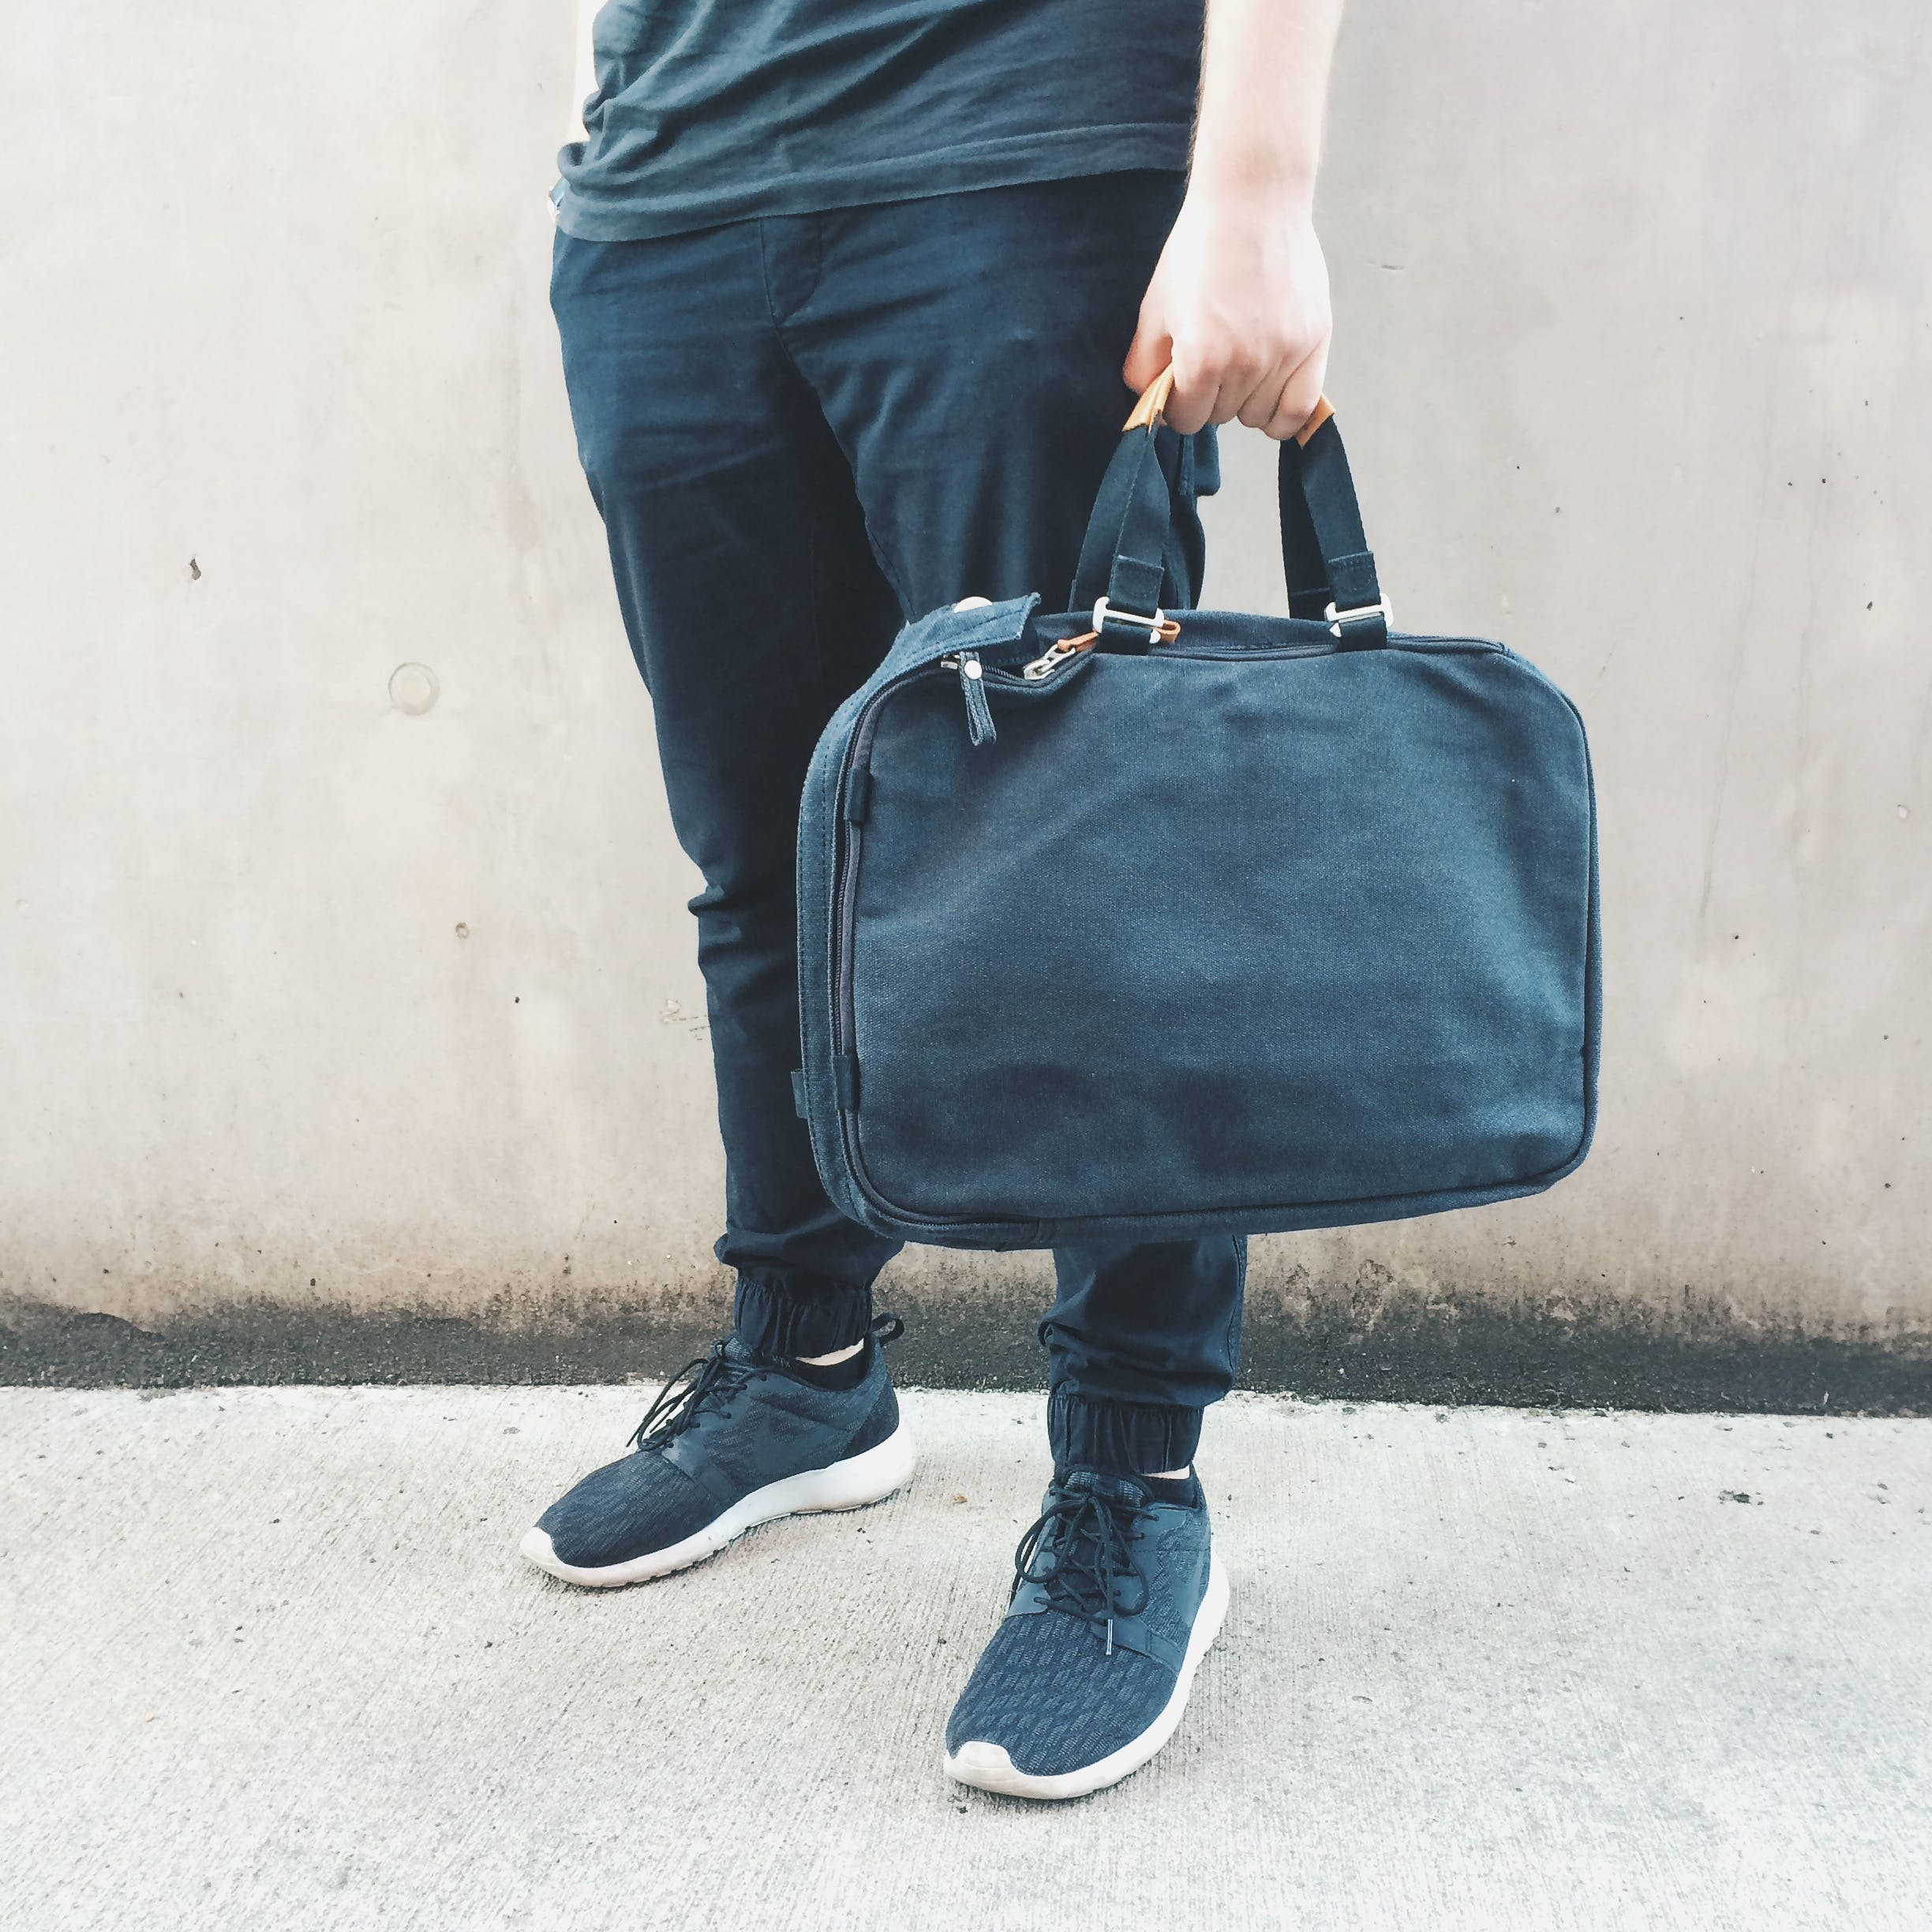 Free stock photo of bag, boy, guy, hipster